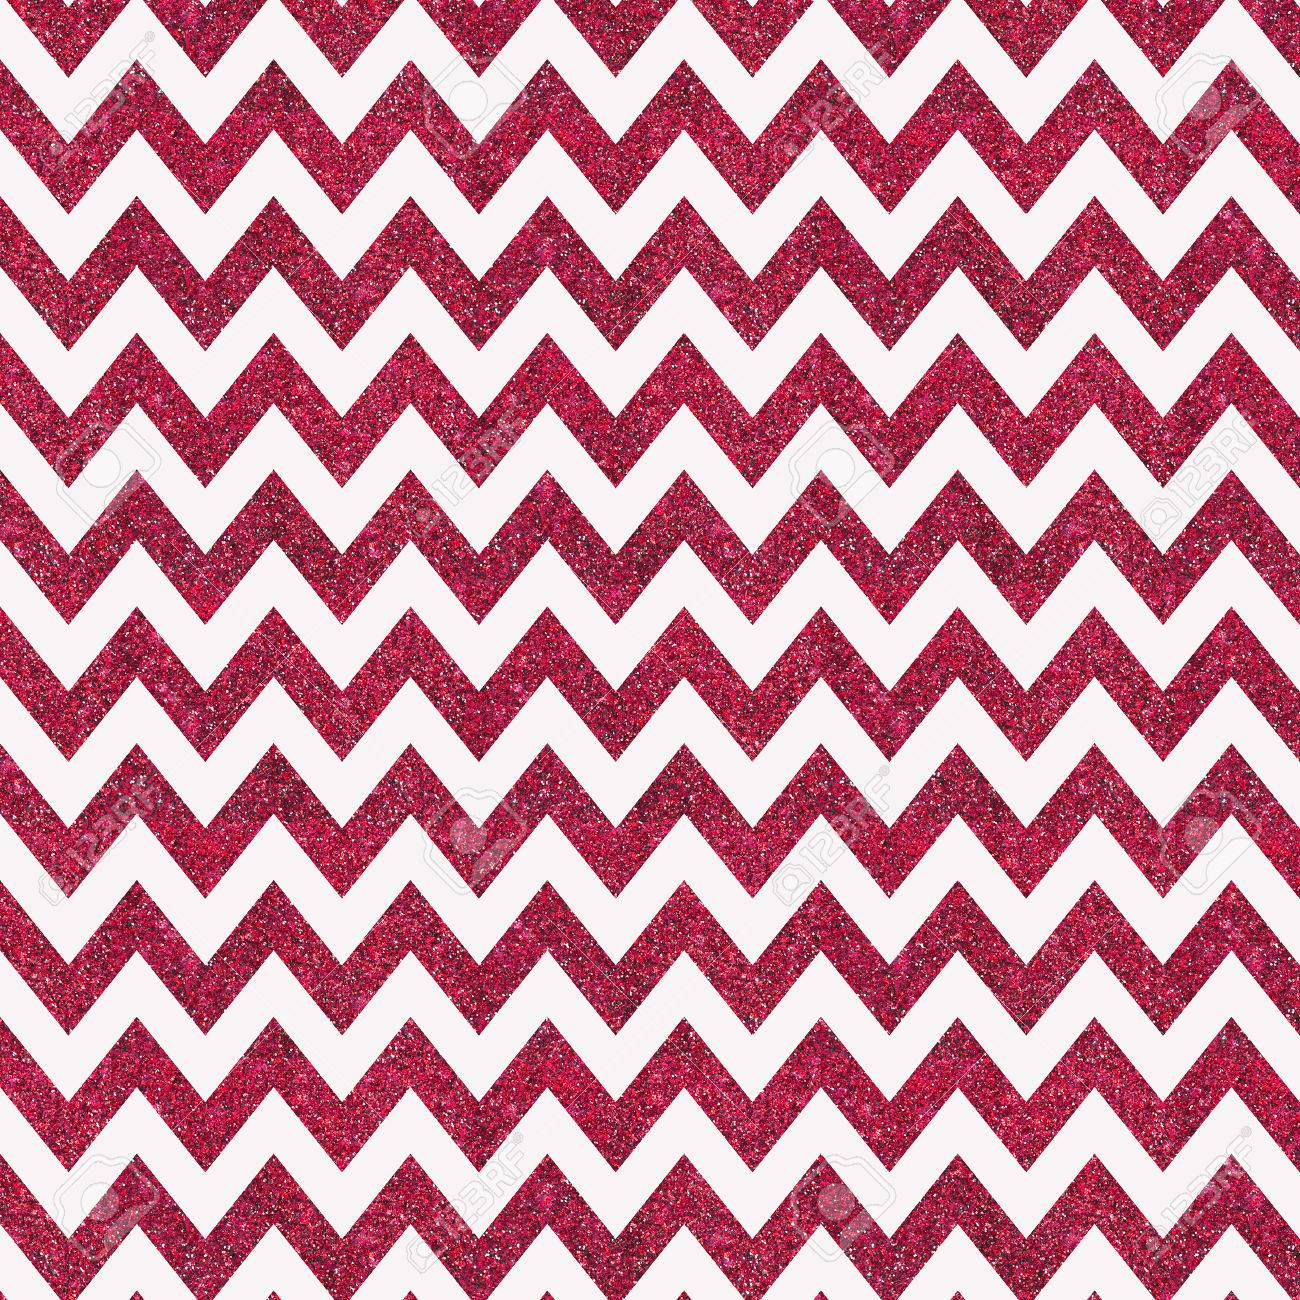 Chevron print background - Pattern With Red Glitter Textured Chevron Print On White Background Stock Photo 52235276